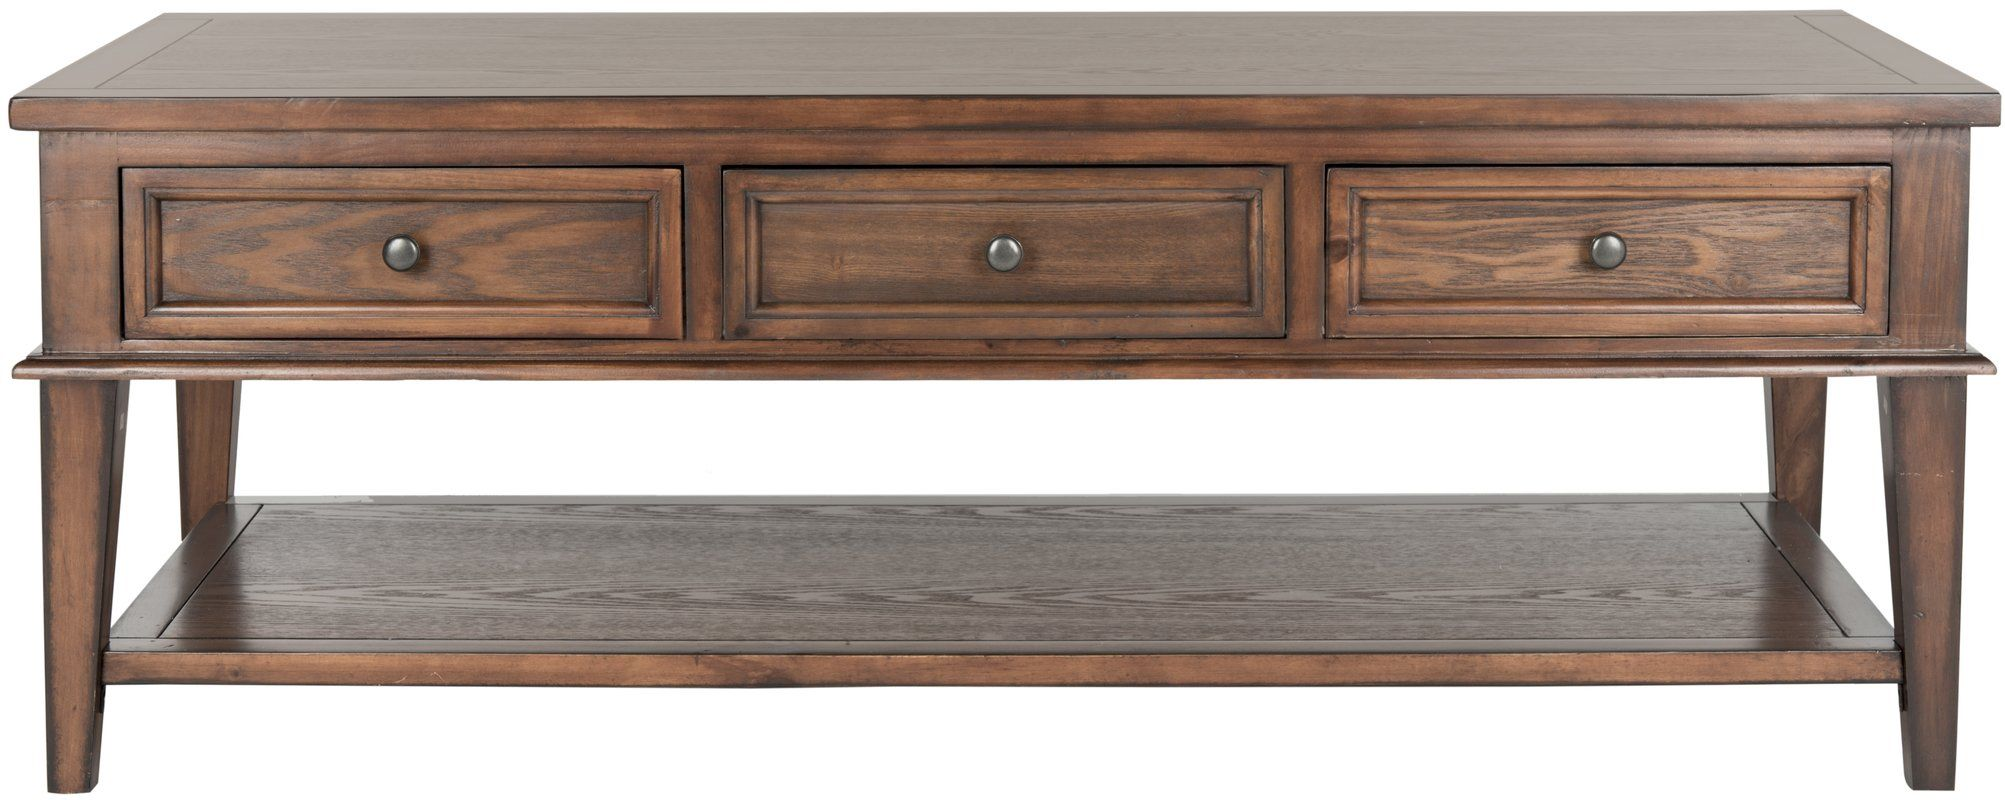 Fantastic Yelena Coffee Table With Storage In 2019 Dream Living Room Machost Co Dining Chair Design Ideas Machostcouk